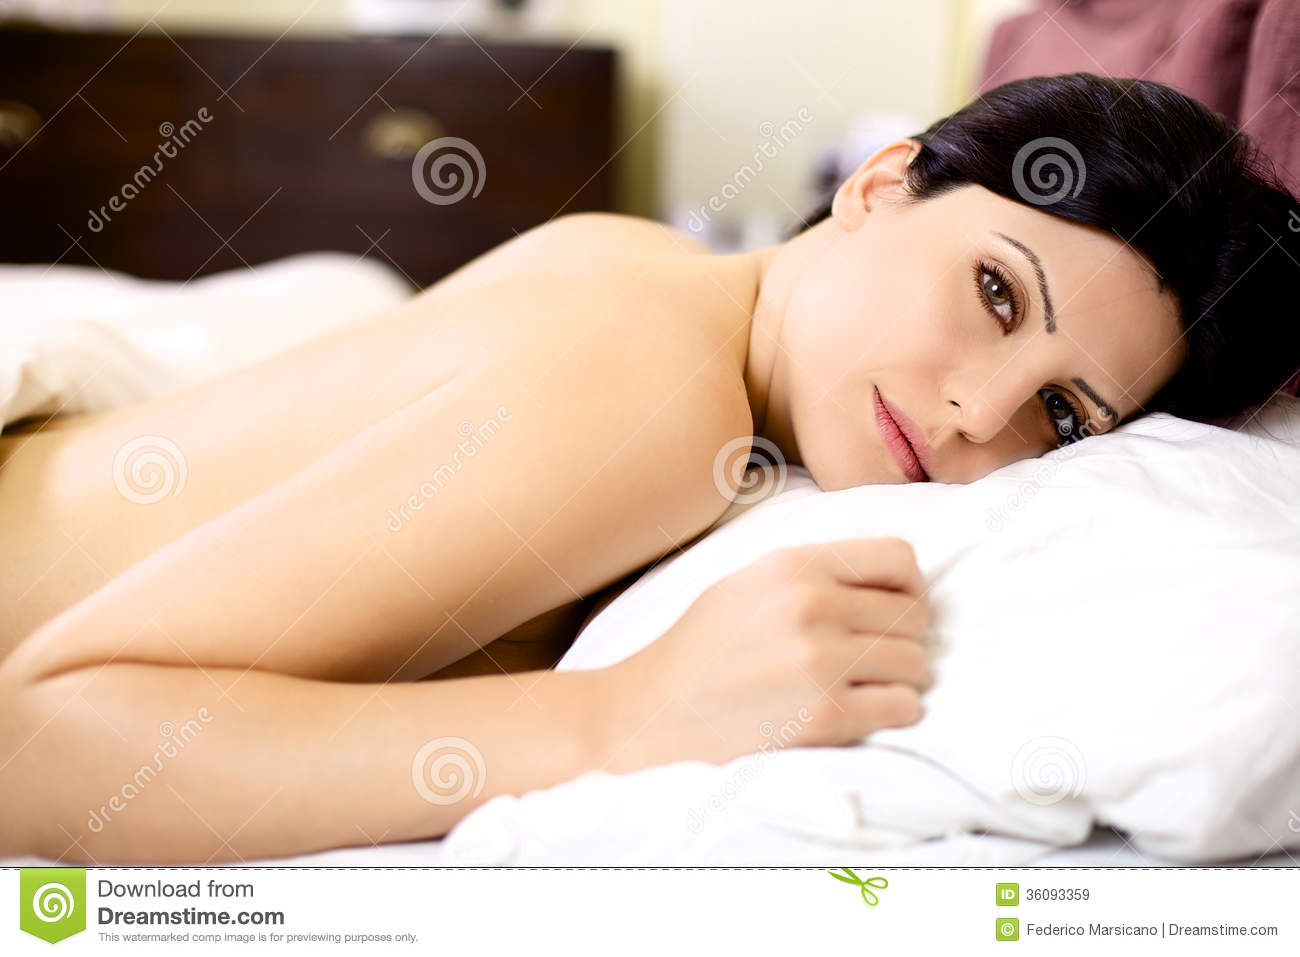 Logically Happy women naked in bed confirm